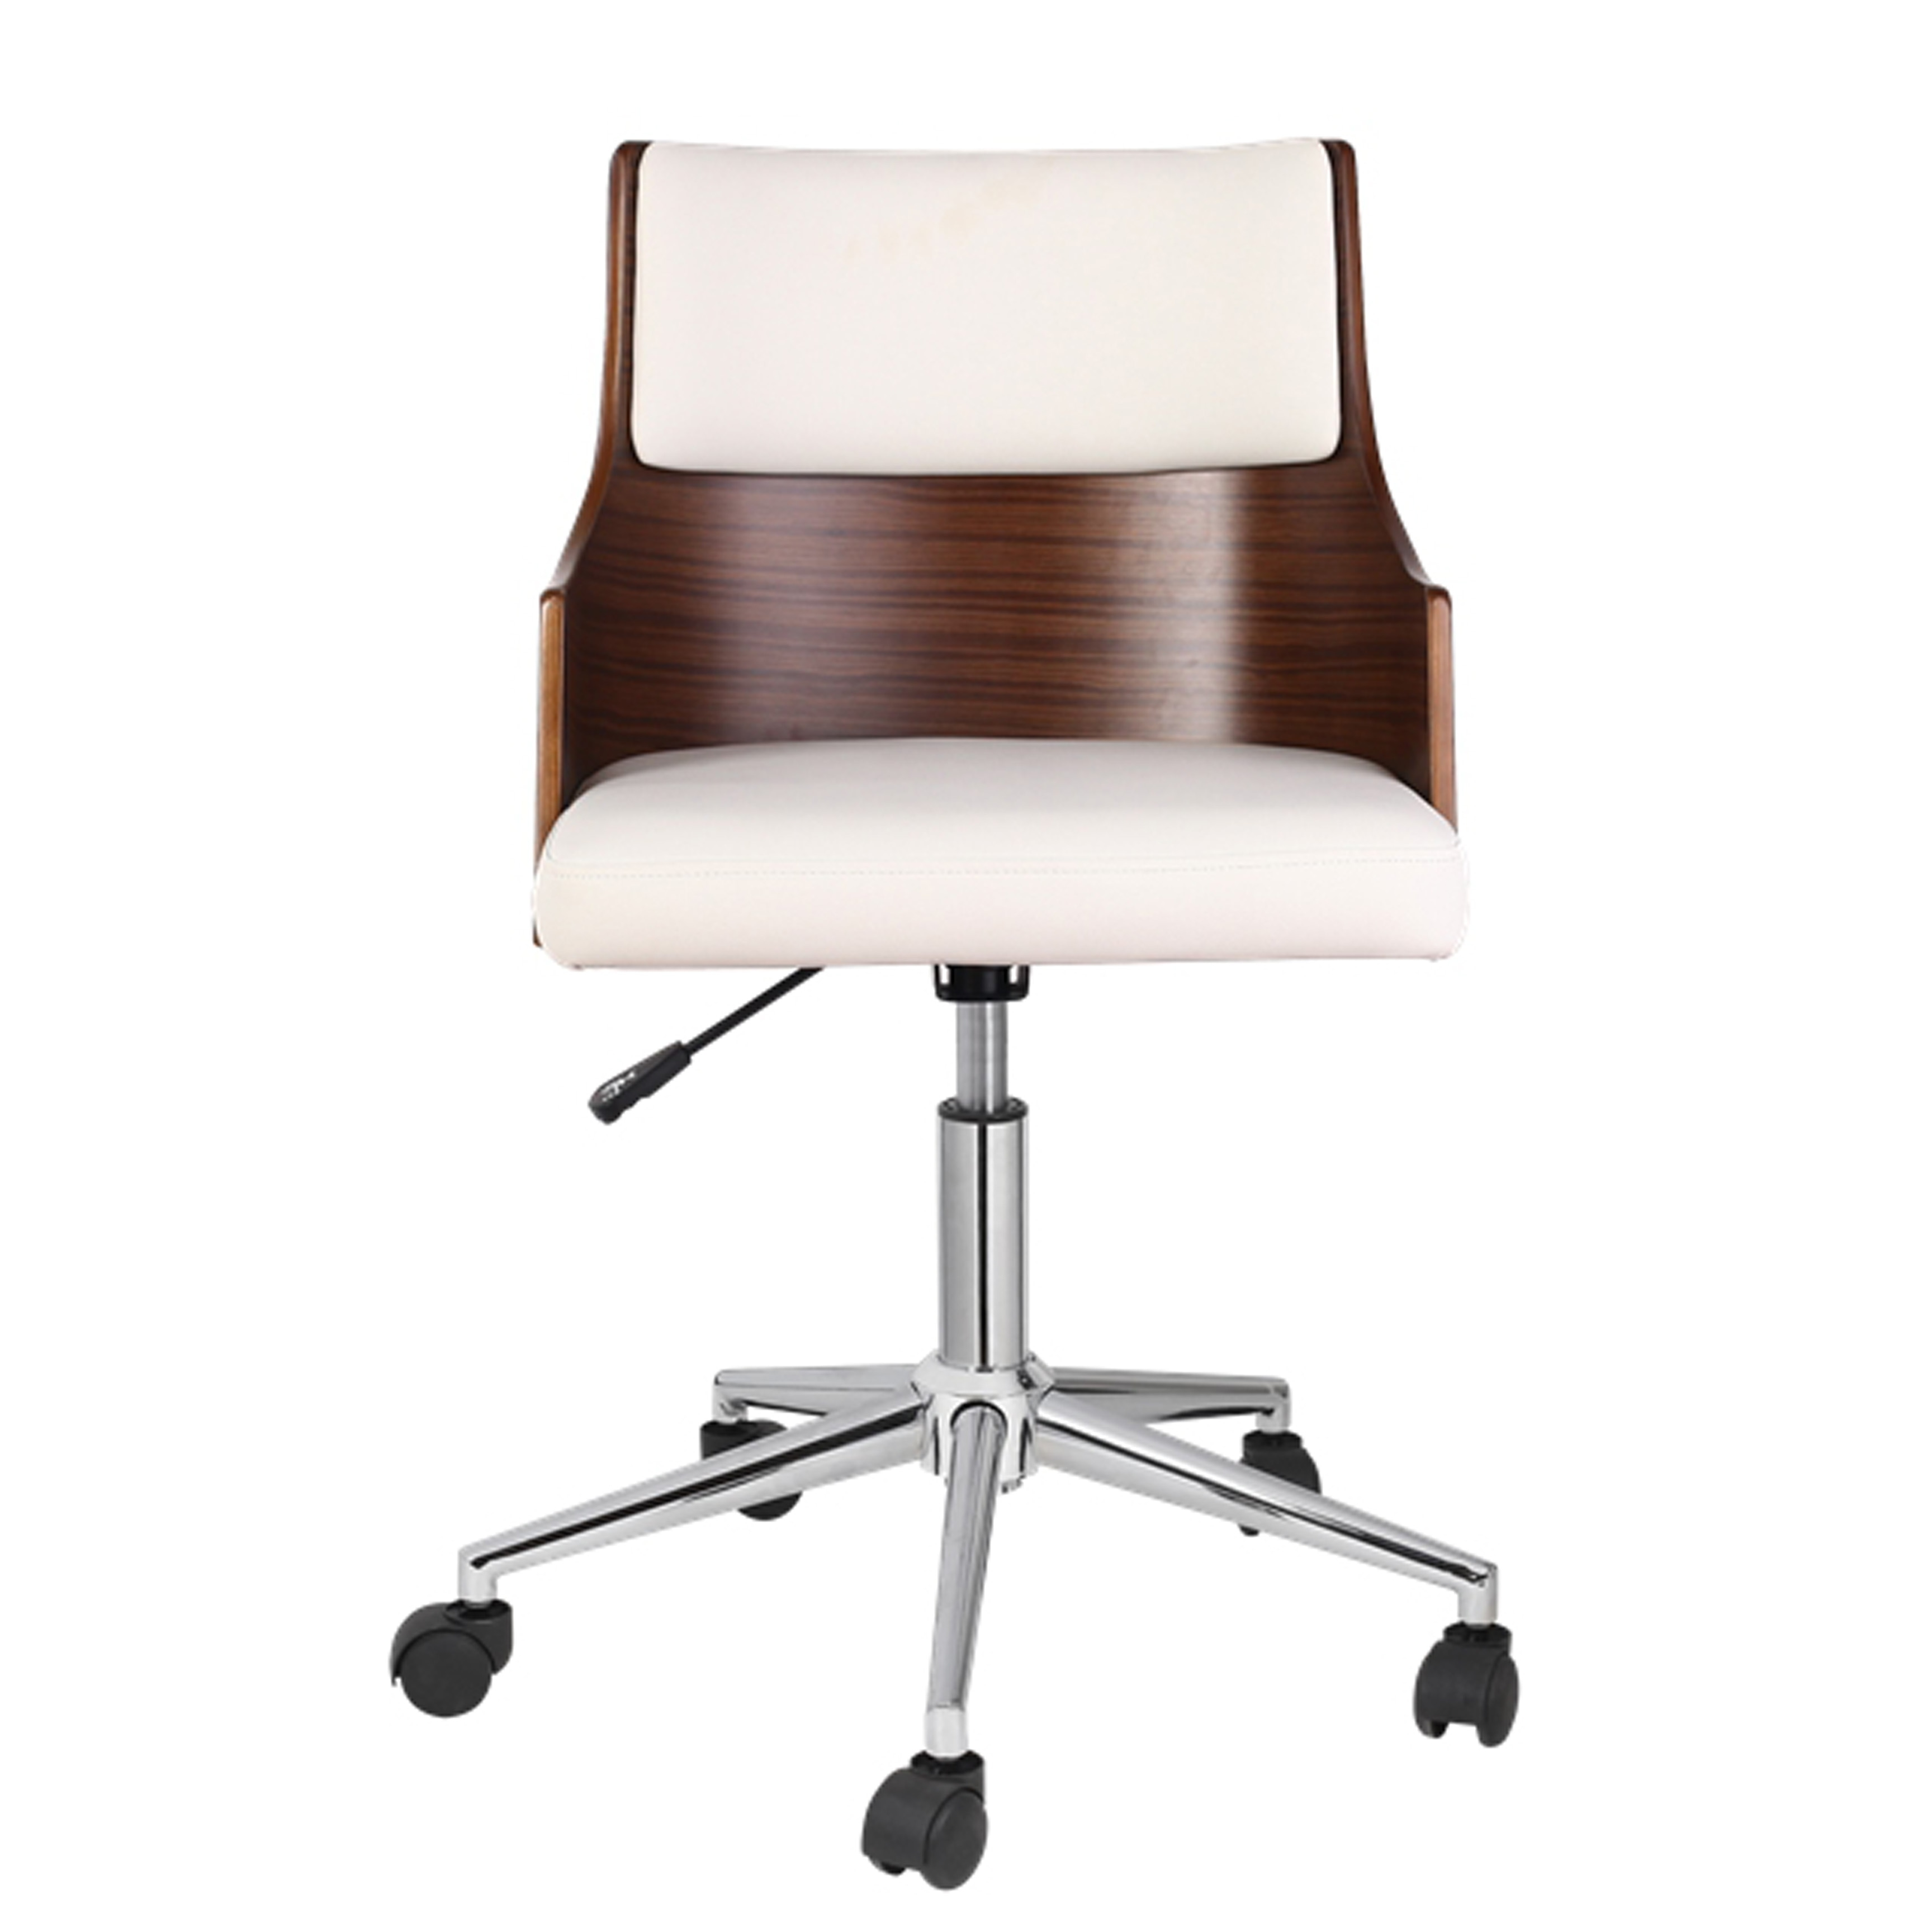 Porthos Home Office Chair With Pvc Upholstery Adjustable Height 360 Degree Swivel And Chrome Steel Legs Various Colors Walmart Com Walmart Com